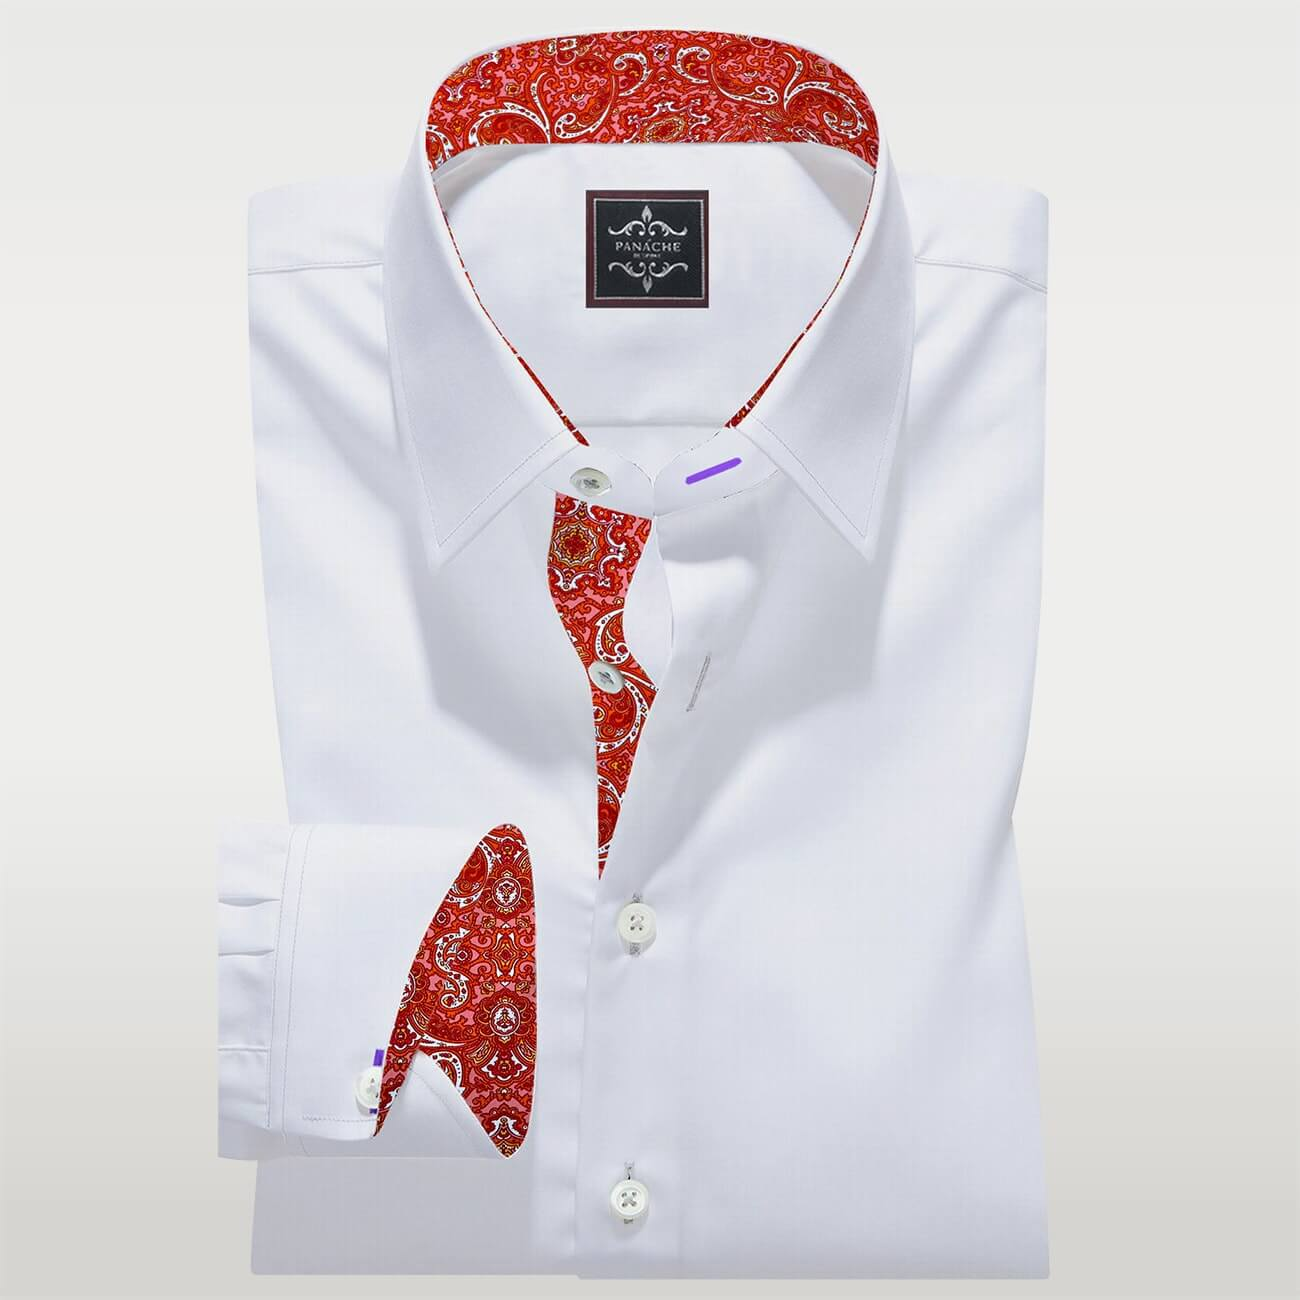 Luxury Red trimming Shirt Mens White Dress Shirt